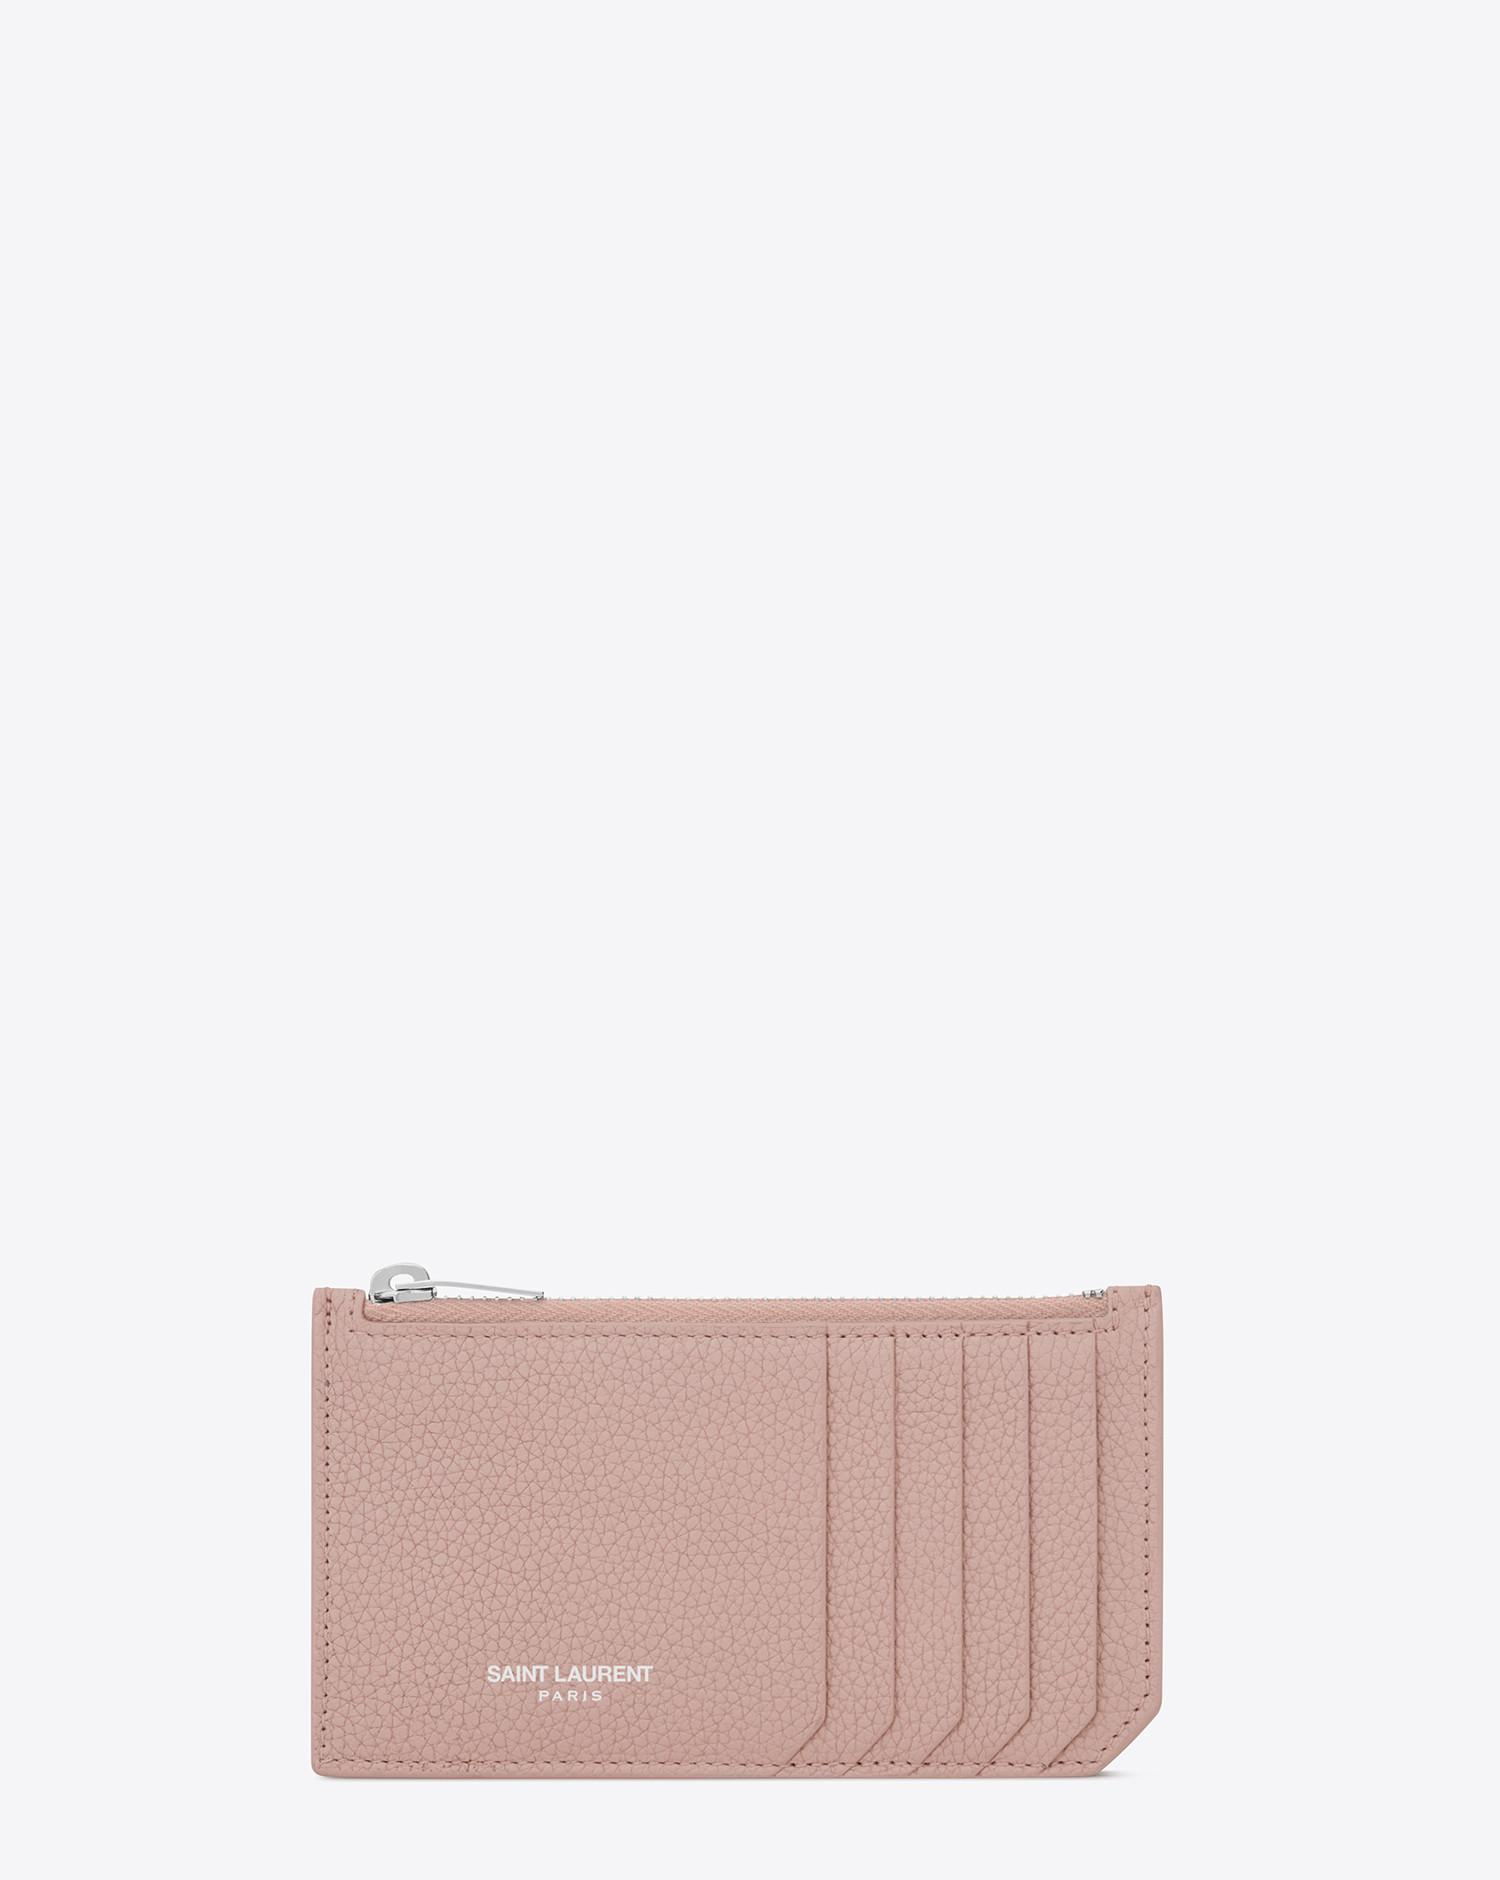 16b6fc708a4 Saint Laurent Fragments Zipped Card Case In Grained Leather in Pink ...